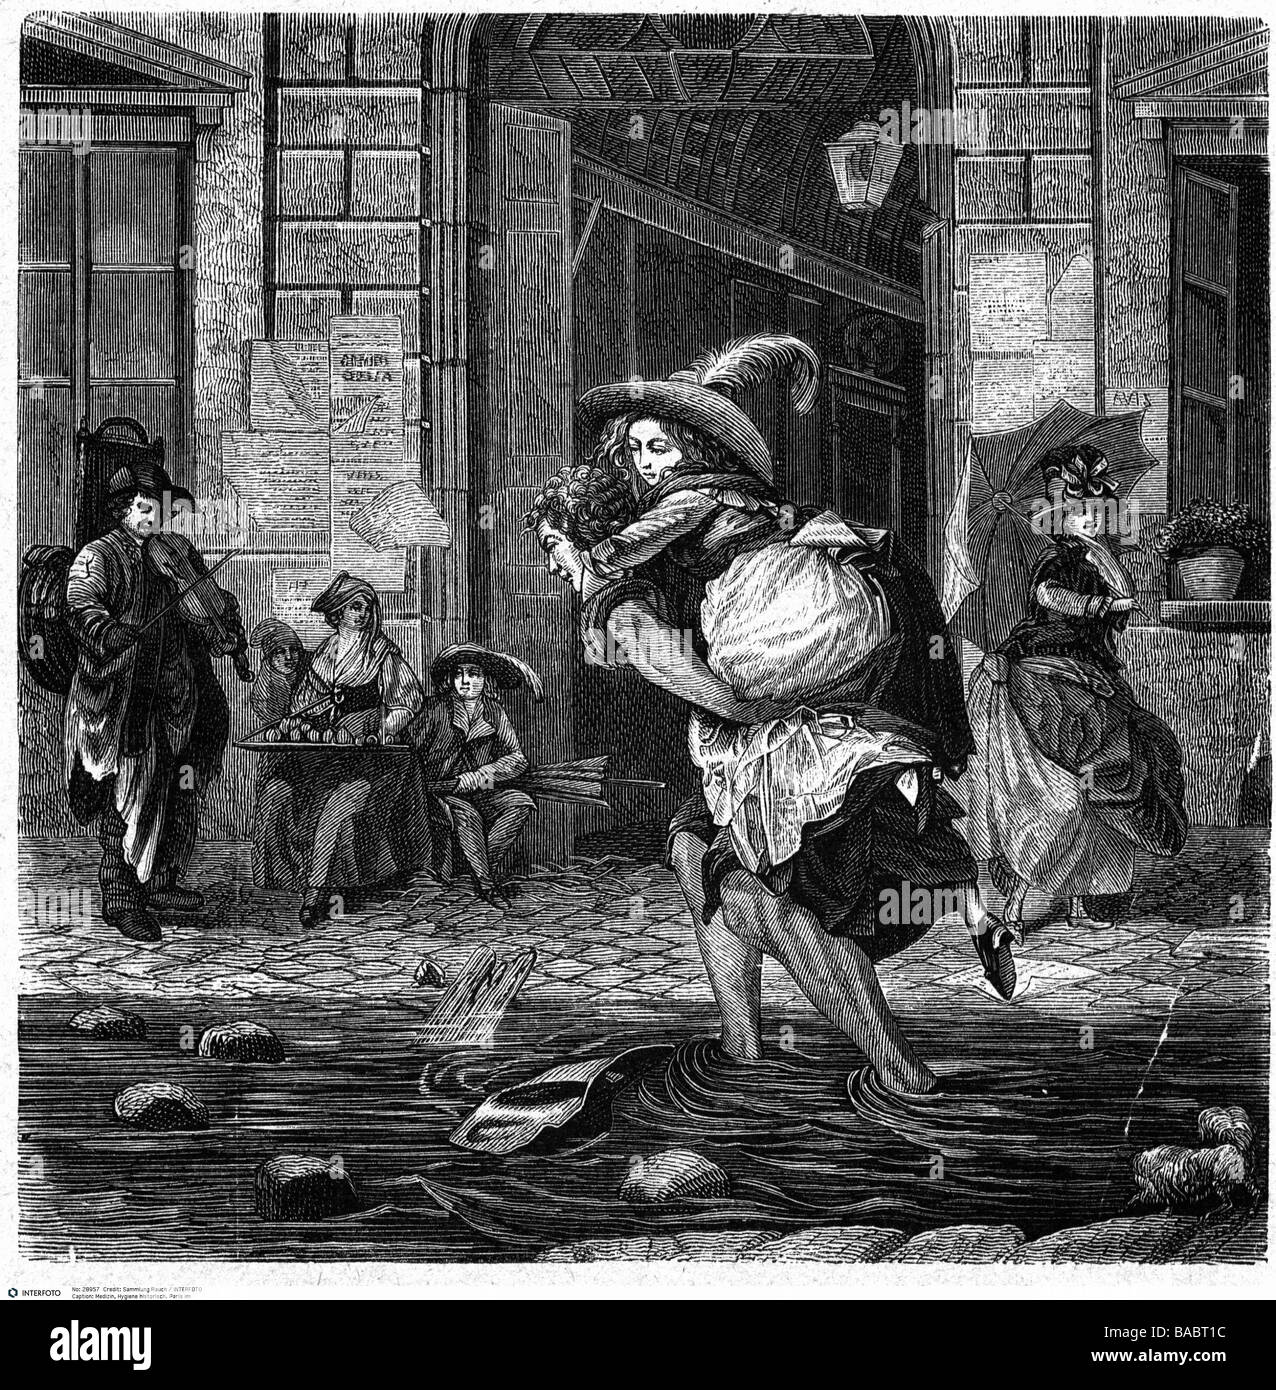 medicine, hygienics, dirt, flooded streets in Paris during rain, 18th century, man carring woman across the street, - Stock Image